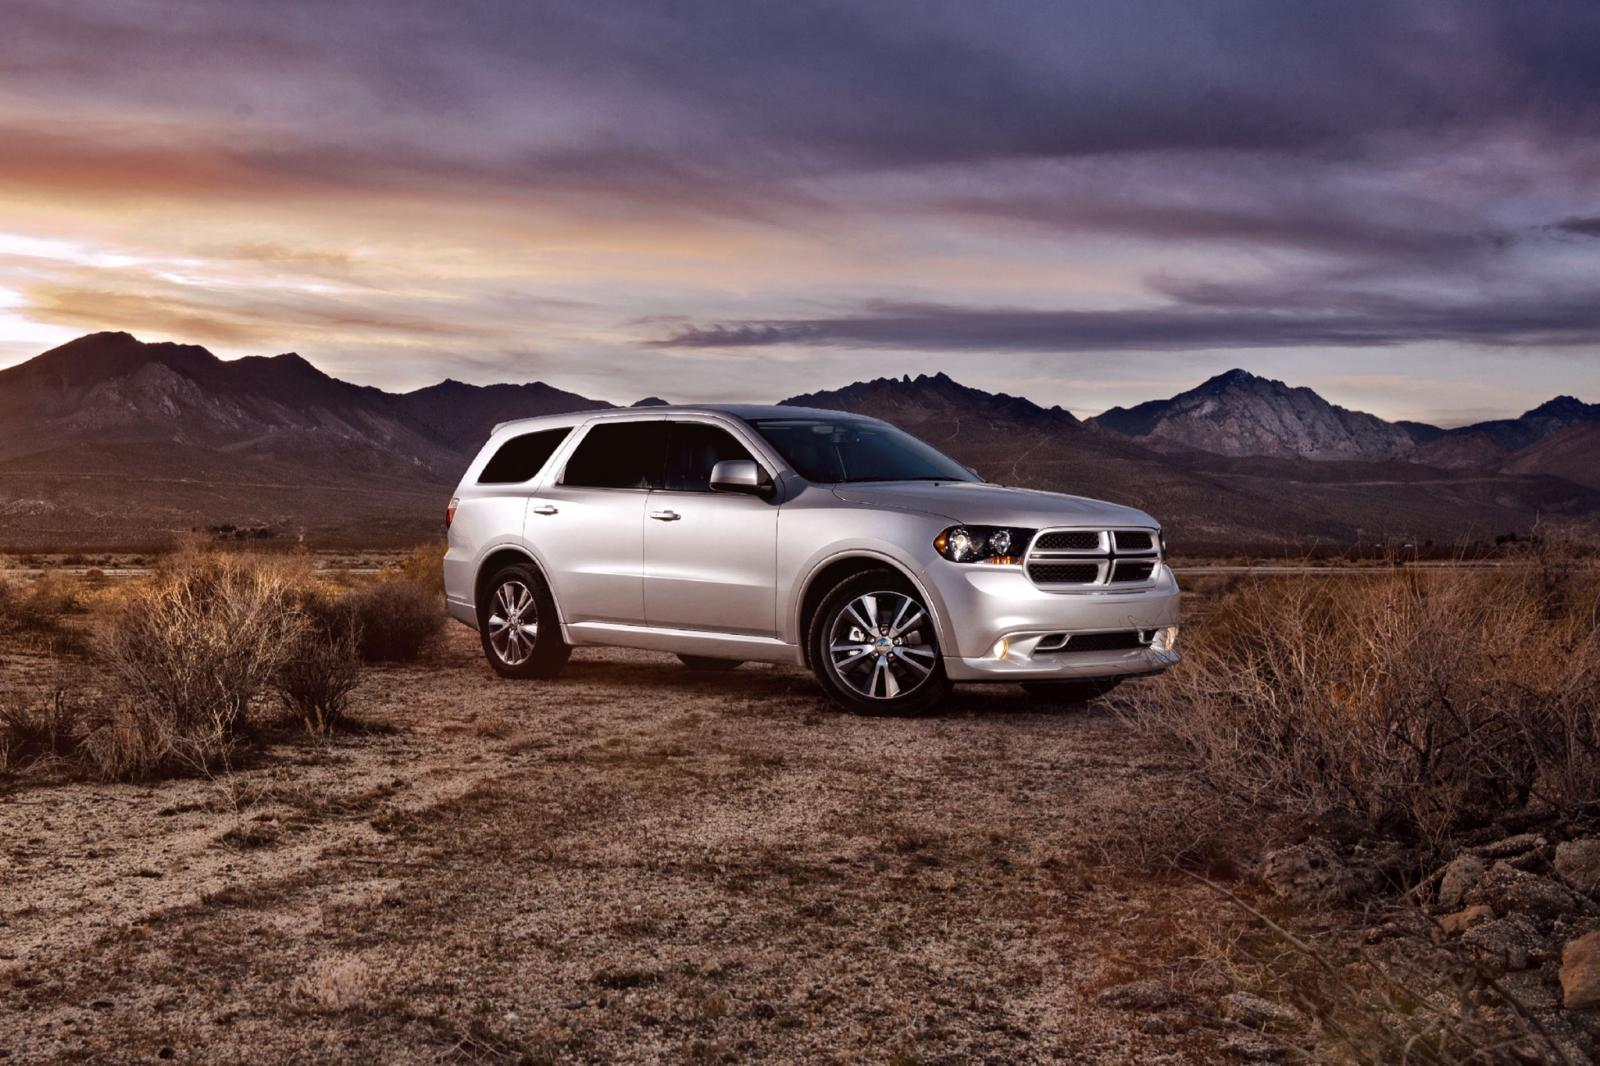 2013 dodge durango information and photos zombiedrive. Black Bedroom Furniture Sets. Home Design Ideas